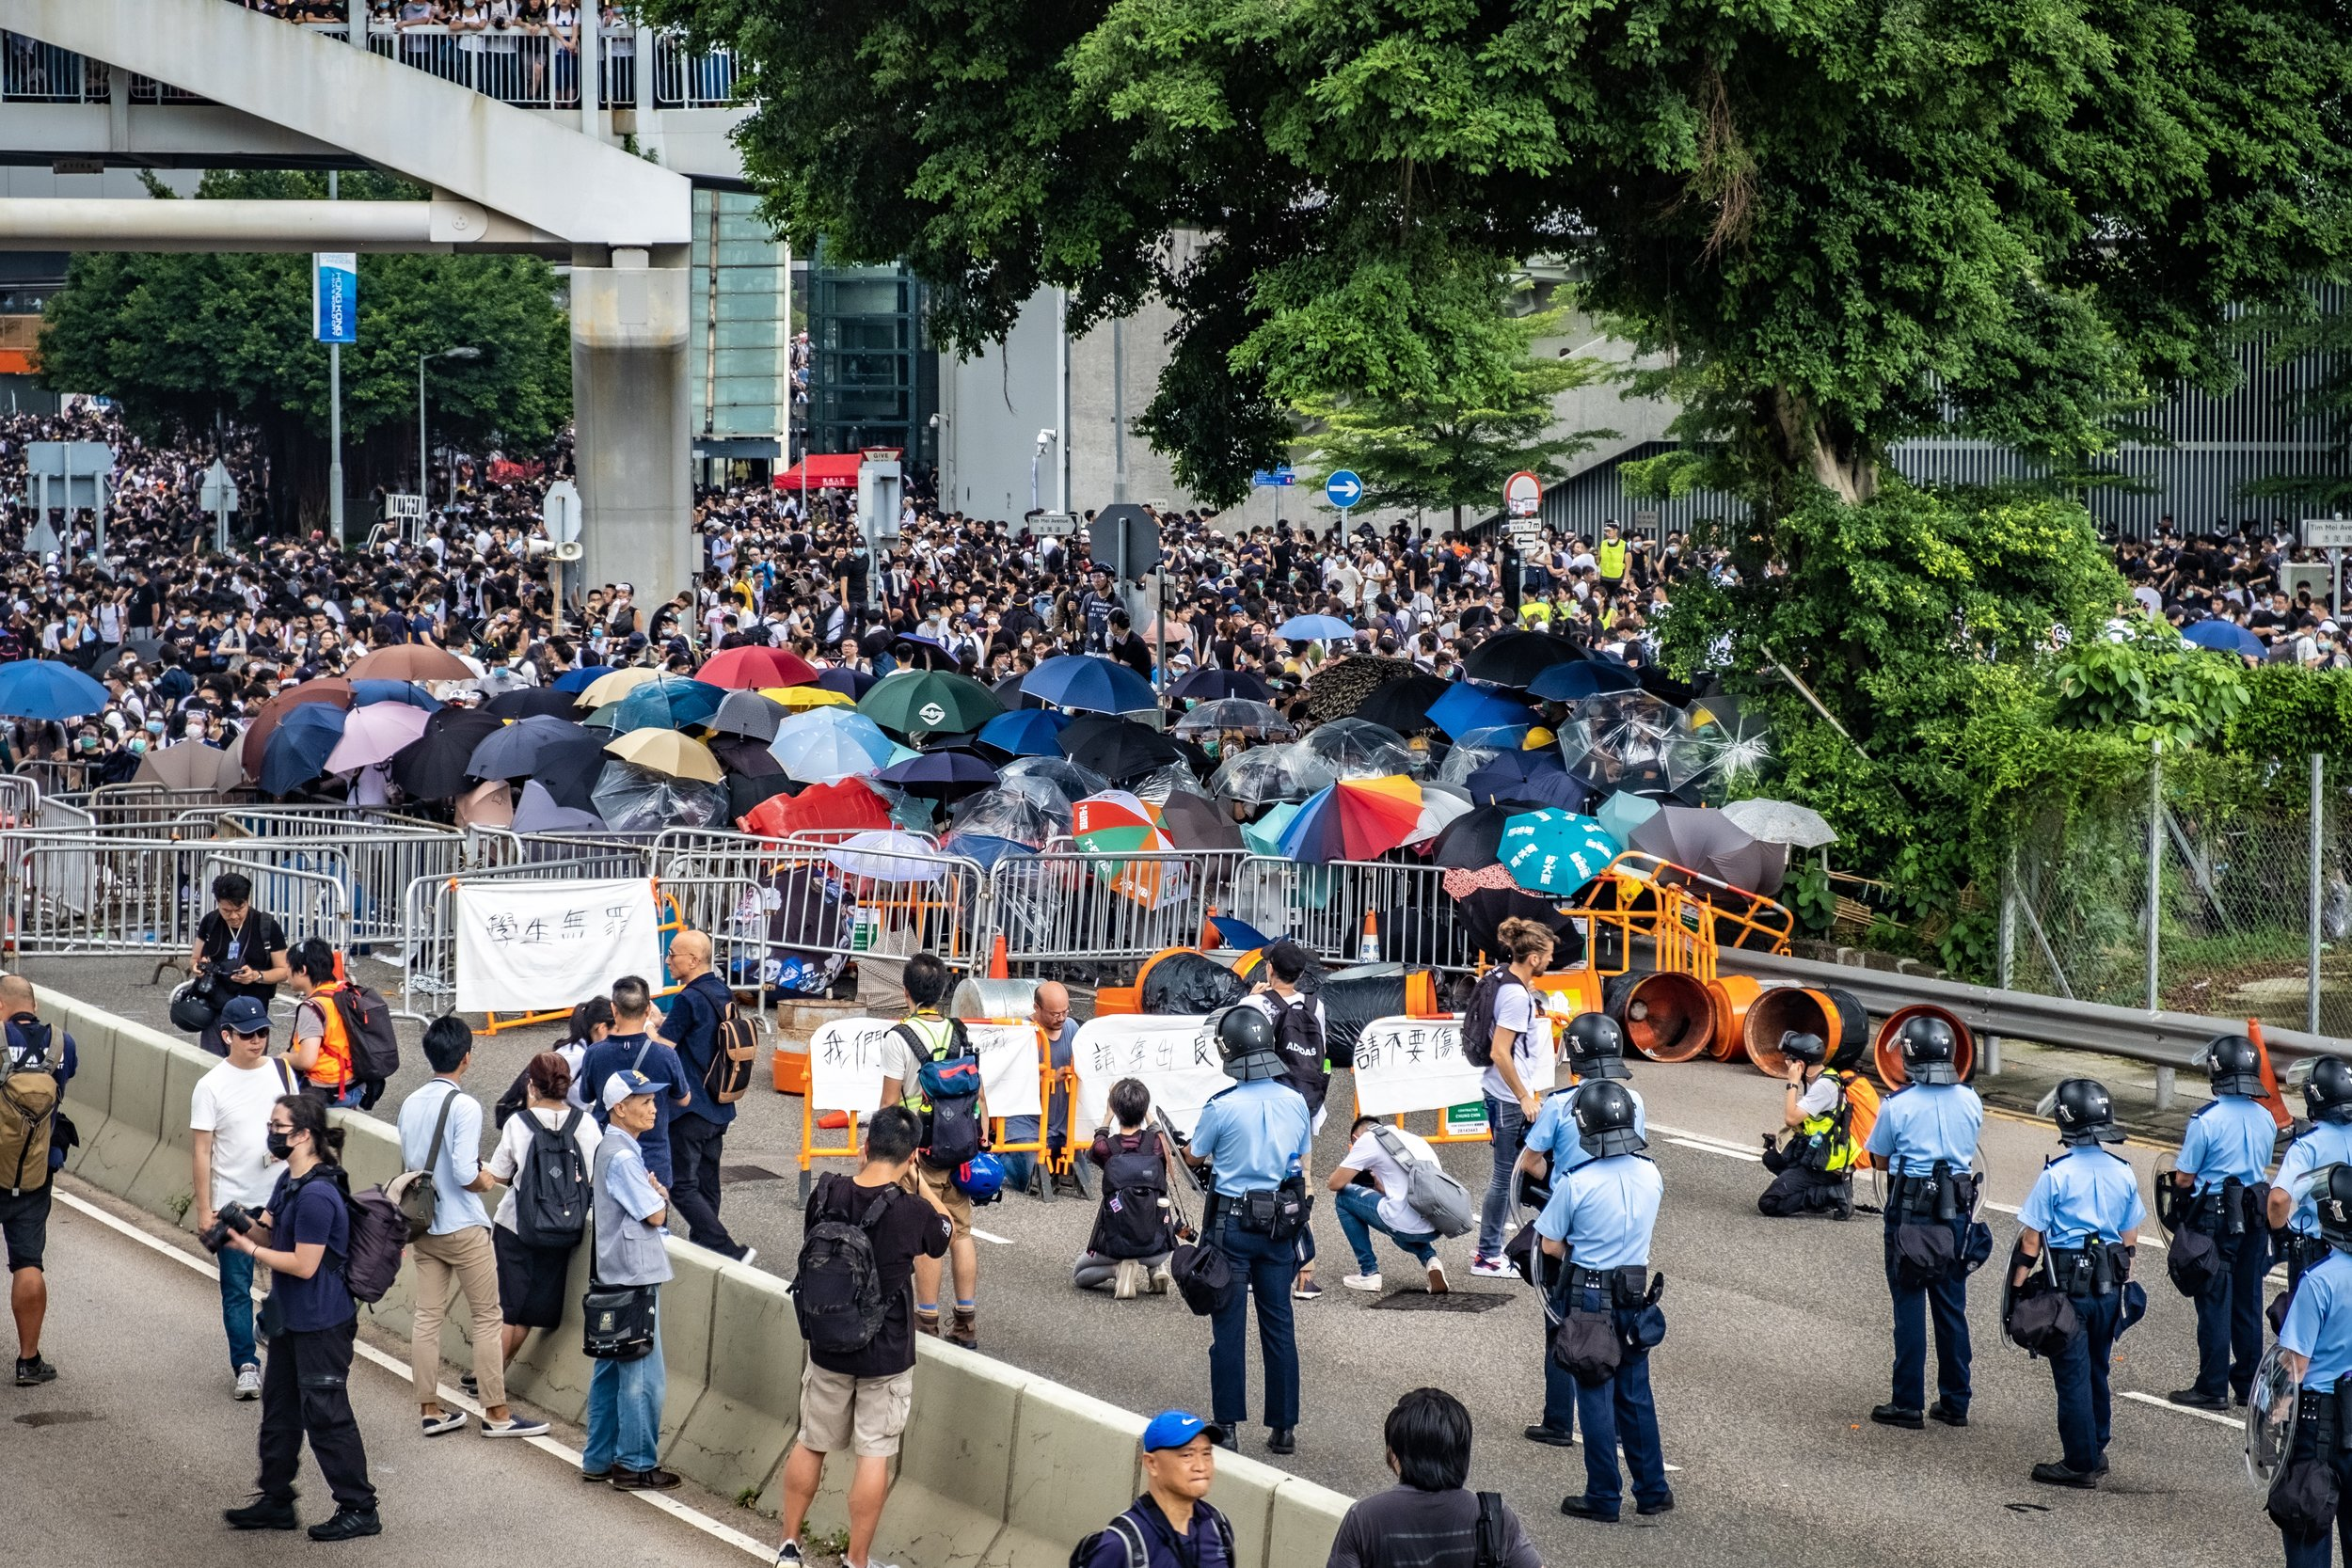 Occupation of LegCo - June 12, 2019